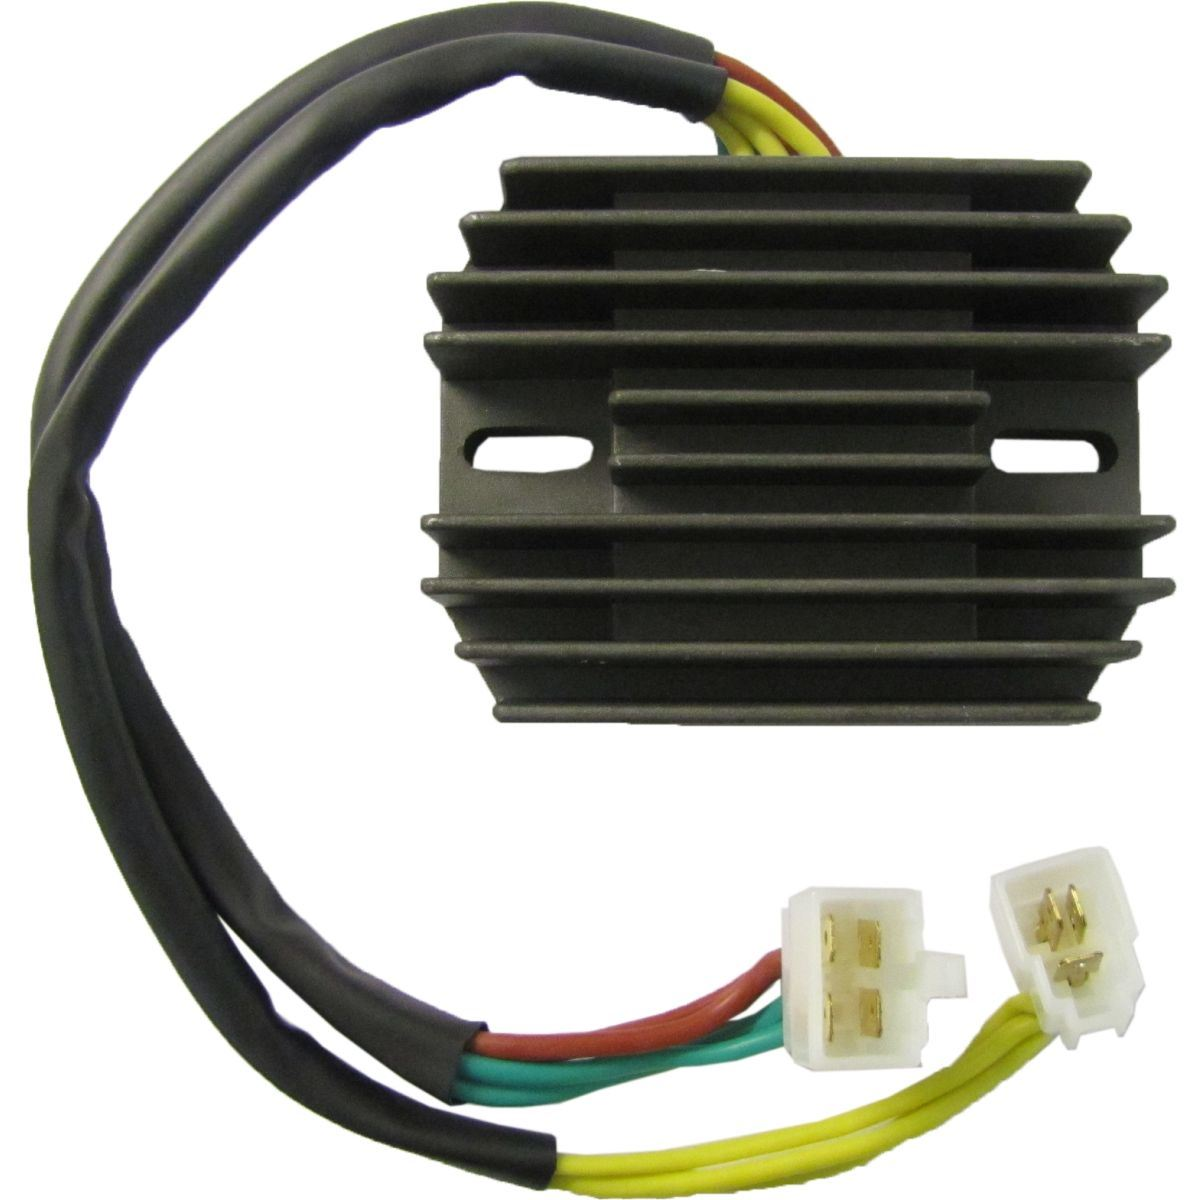 Honda Regulator Rectifier Wiring Electrical Diagrams Crf Vfr750 Vf750 7 Wires Sh538d 13 Ebay Cb 750